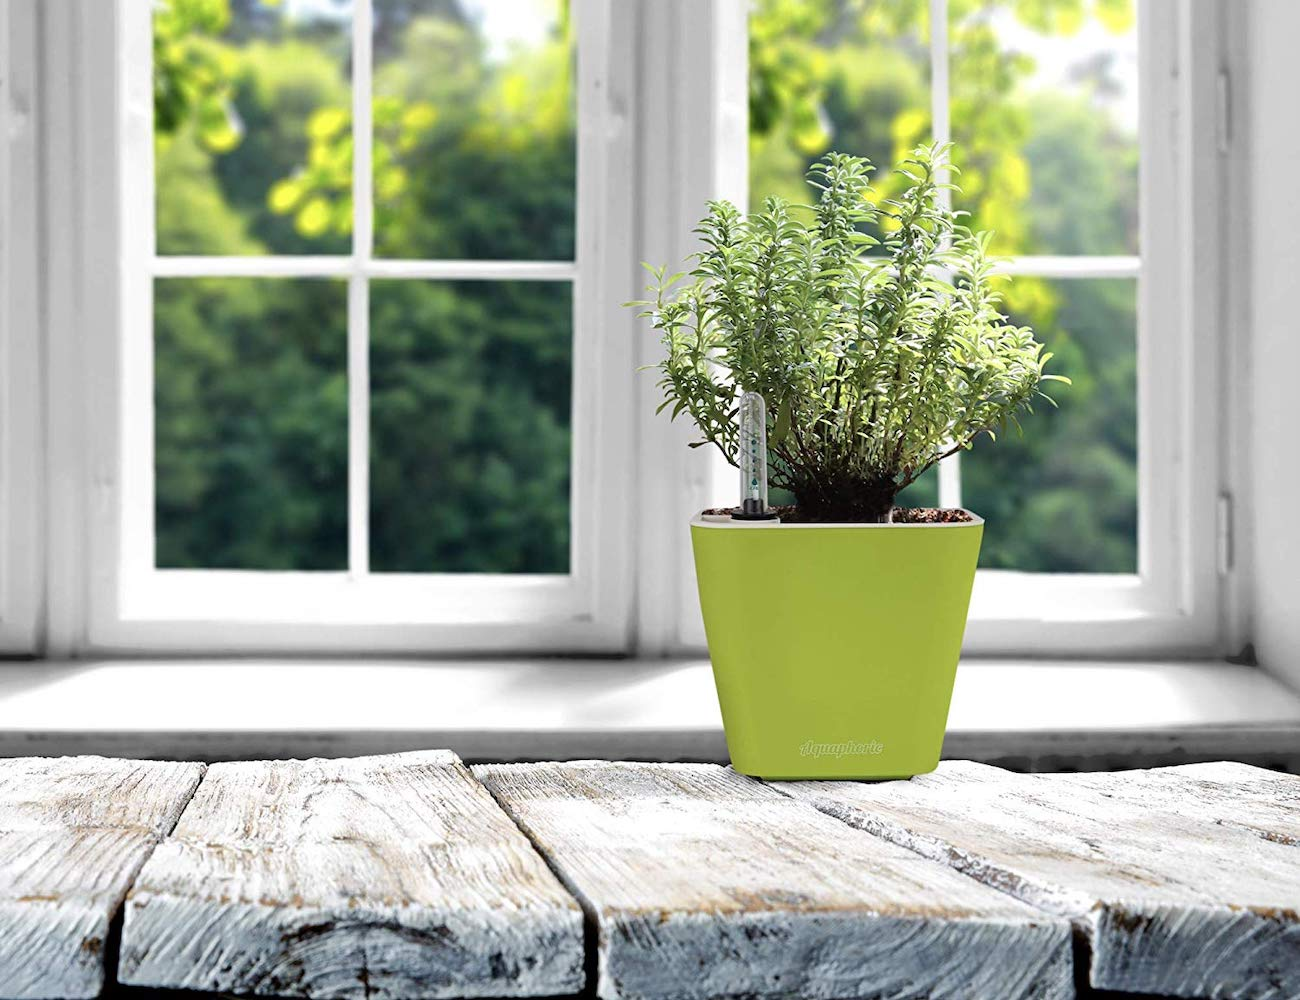 Aquaphoric Small Self-Watering Planter by Window Garden gives life to your home